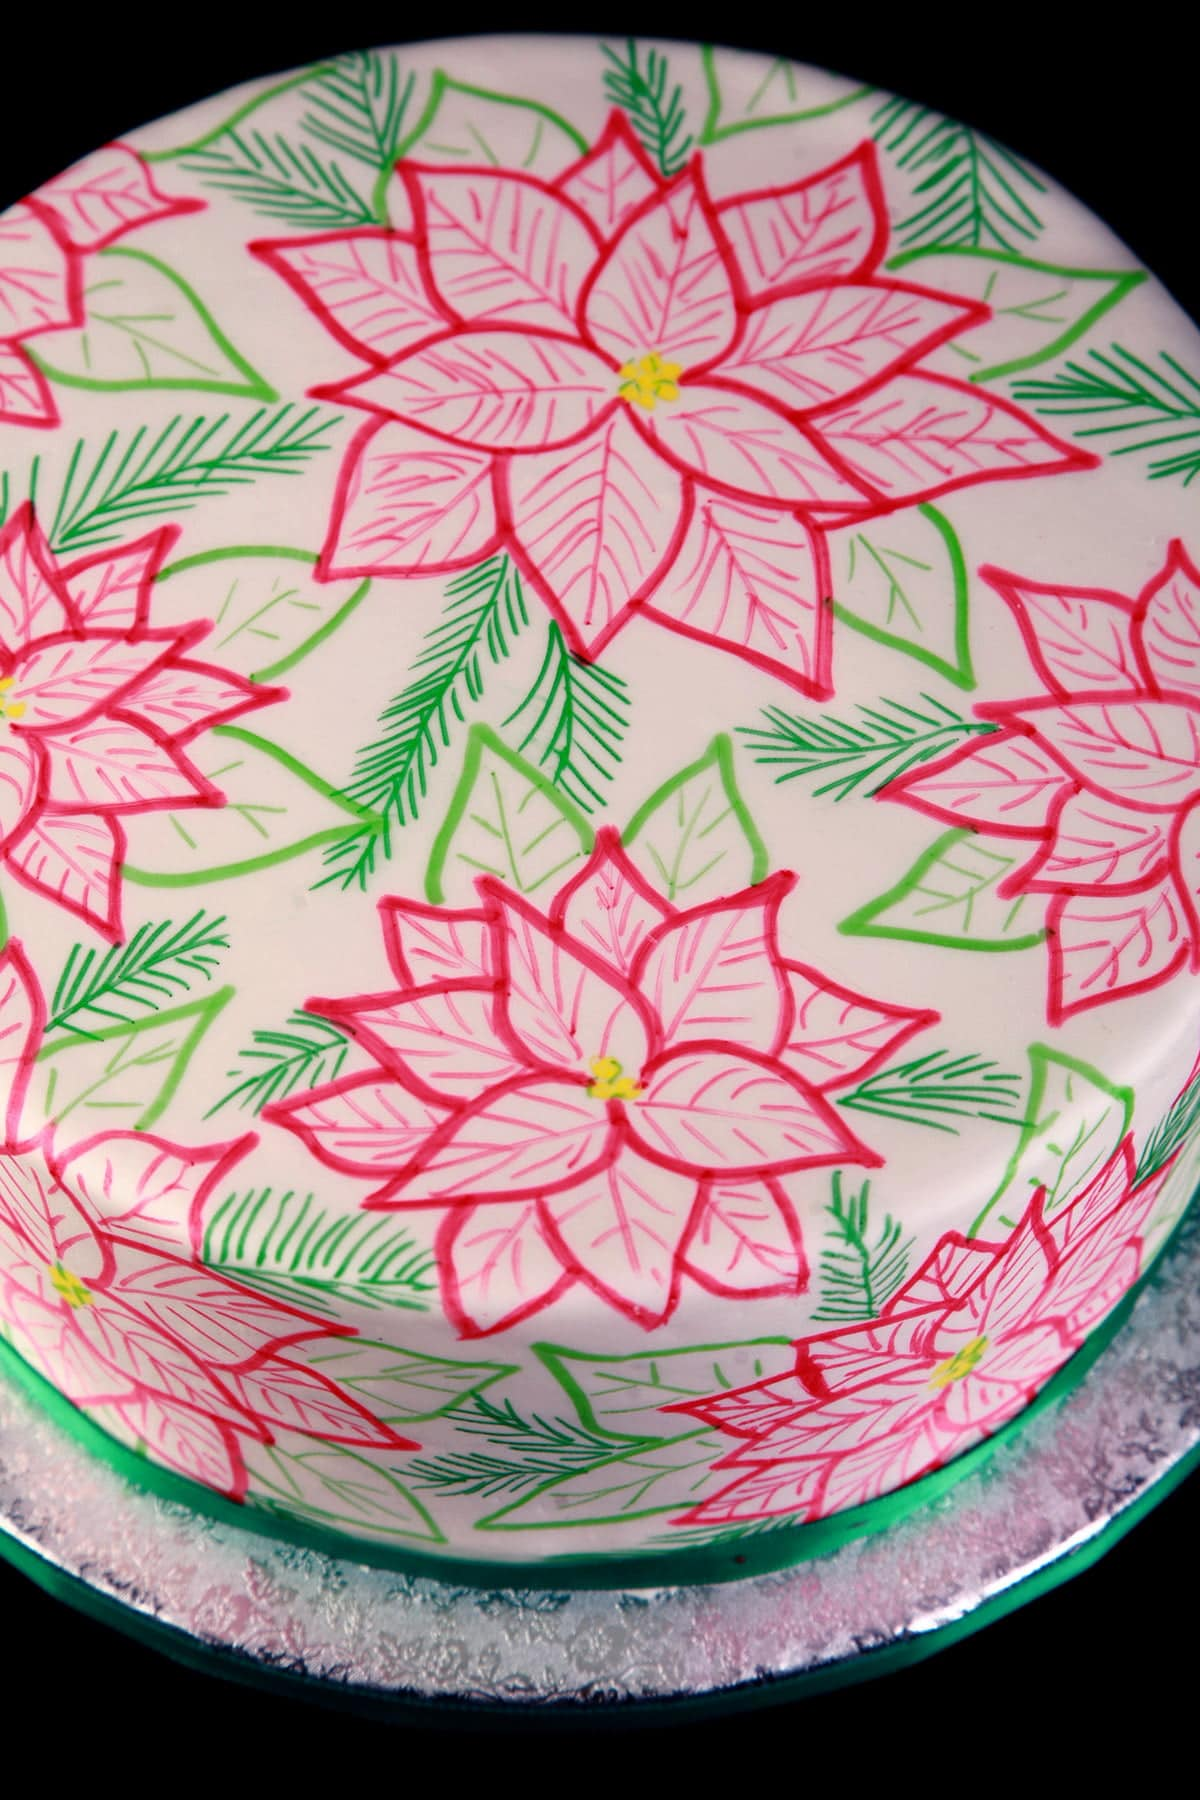 A large, round cake covered in smooth white fondant is covered in hand sketched poinsettias. The design is in red, 2 shades of green, and has yellow accents. The base of the cake is wrapped with green satin ribbon.